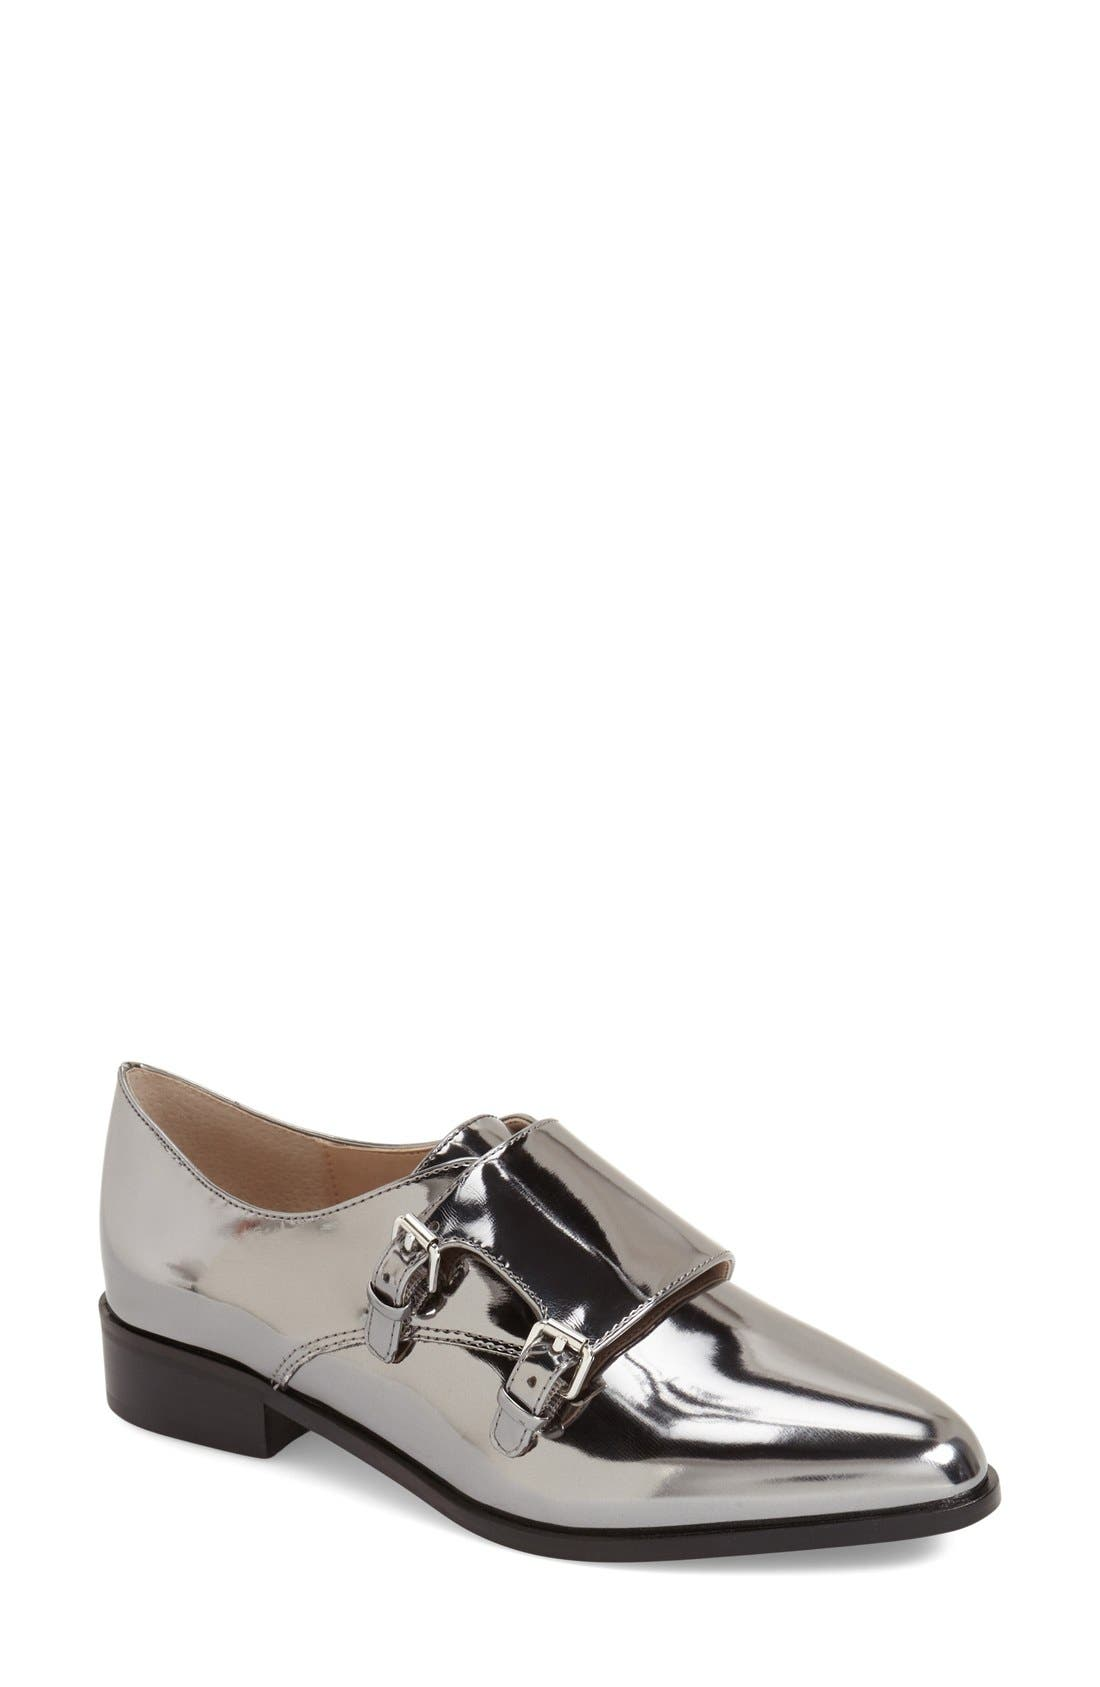 Main Image - French Connection 'Lorinda' Monk Strap Loafer (Women)